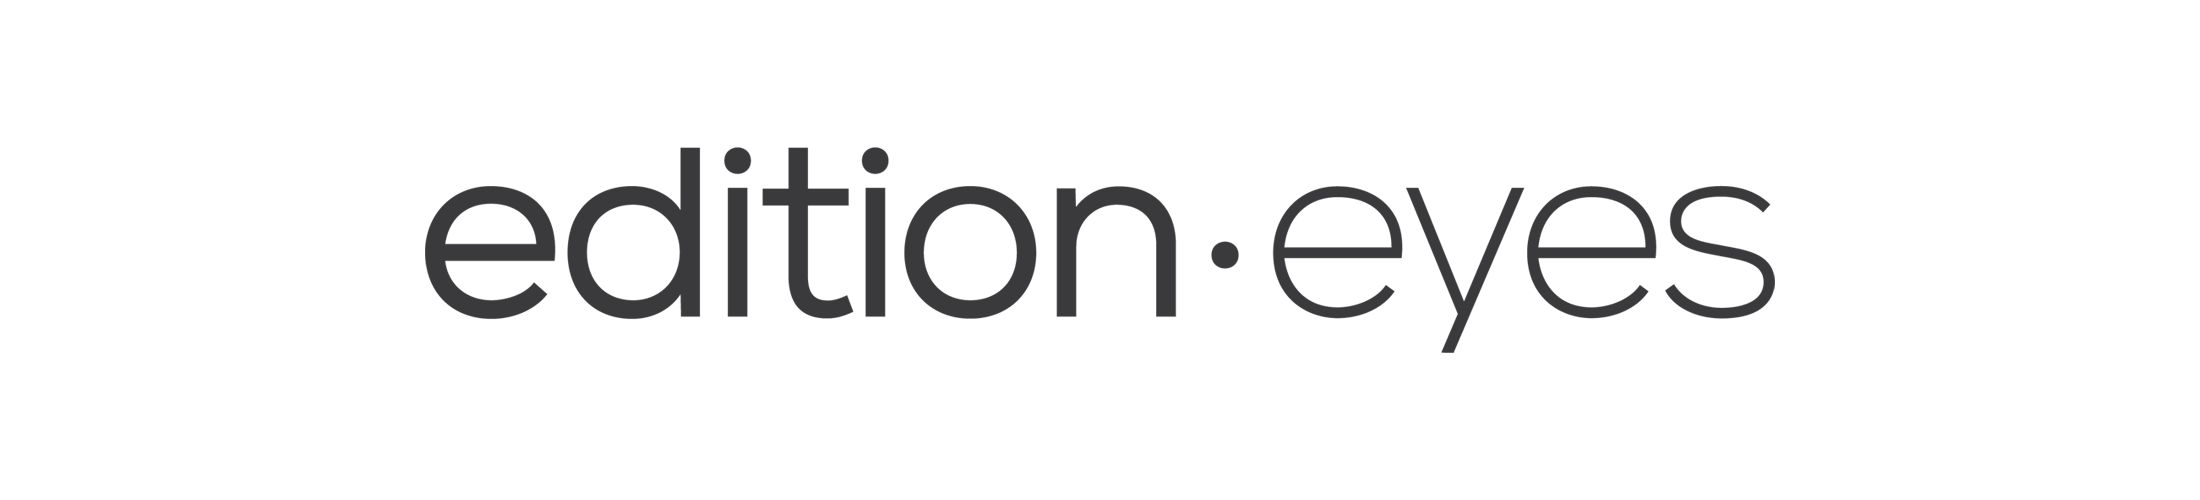 edition eyes logo